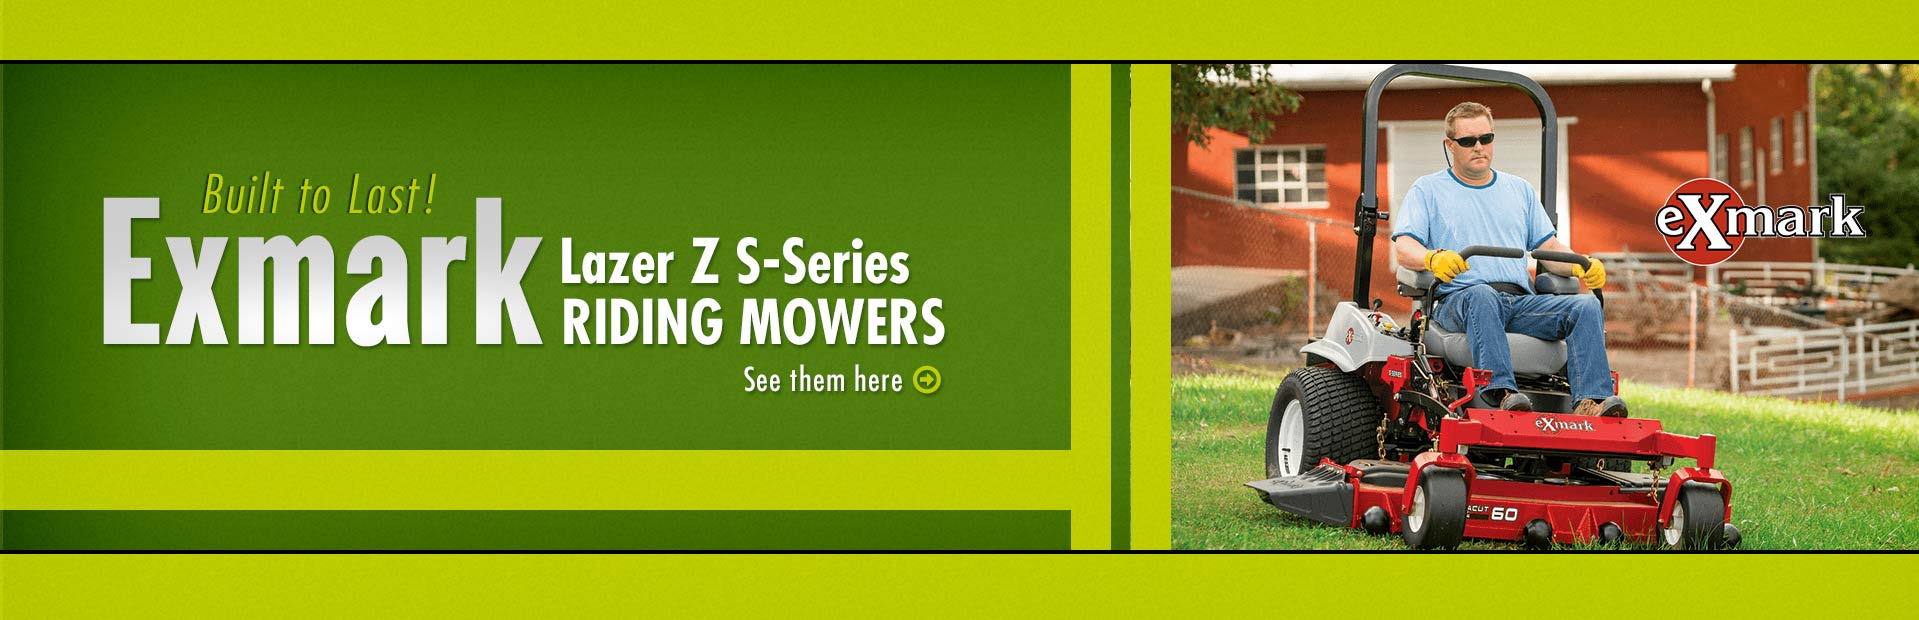 Exmark Lazer Z S-Series Riding Mowers: Click here to view the models.